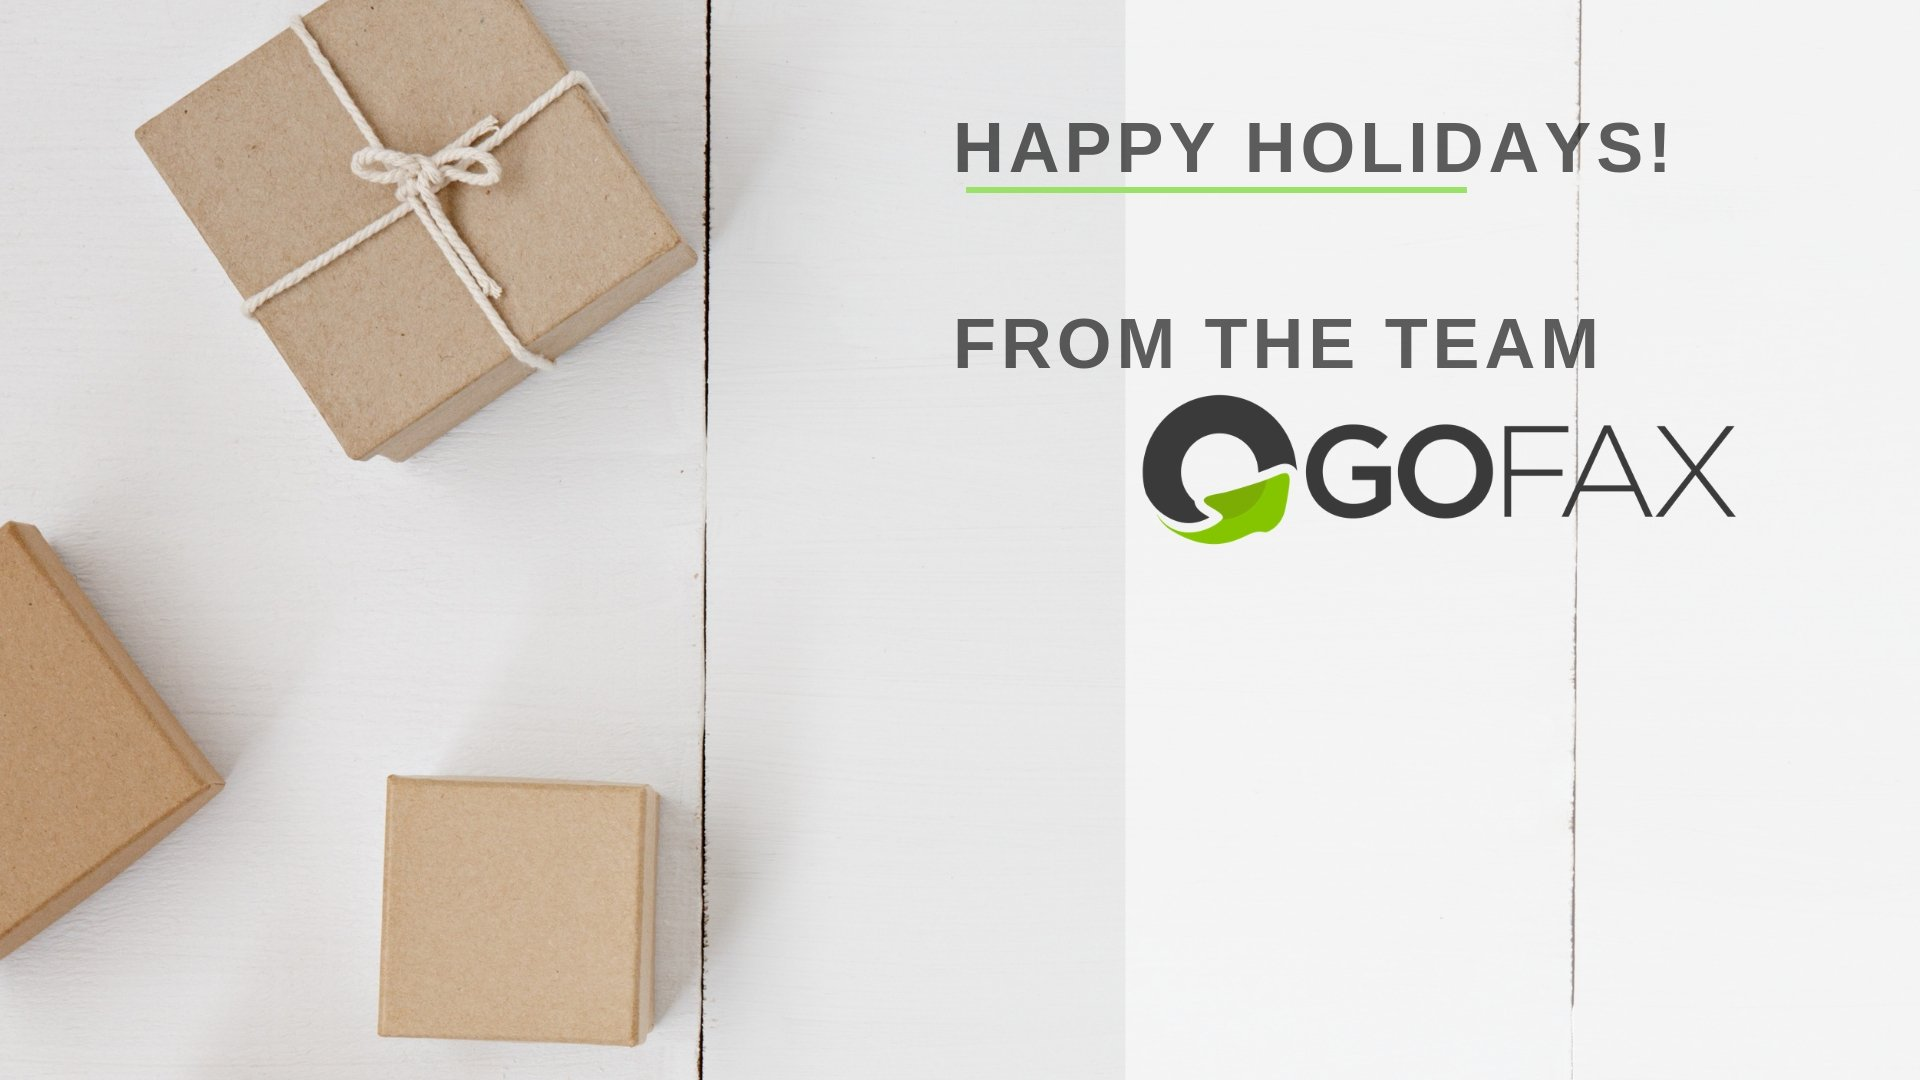 gofax-holiday-hours-embargo-period